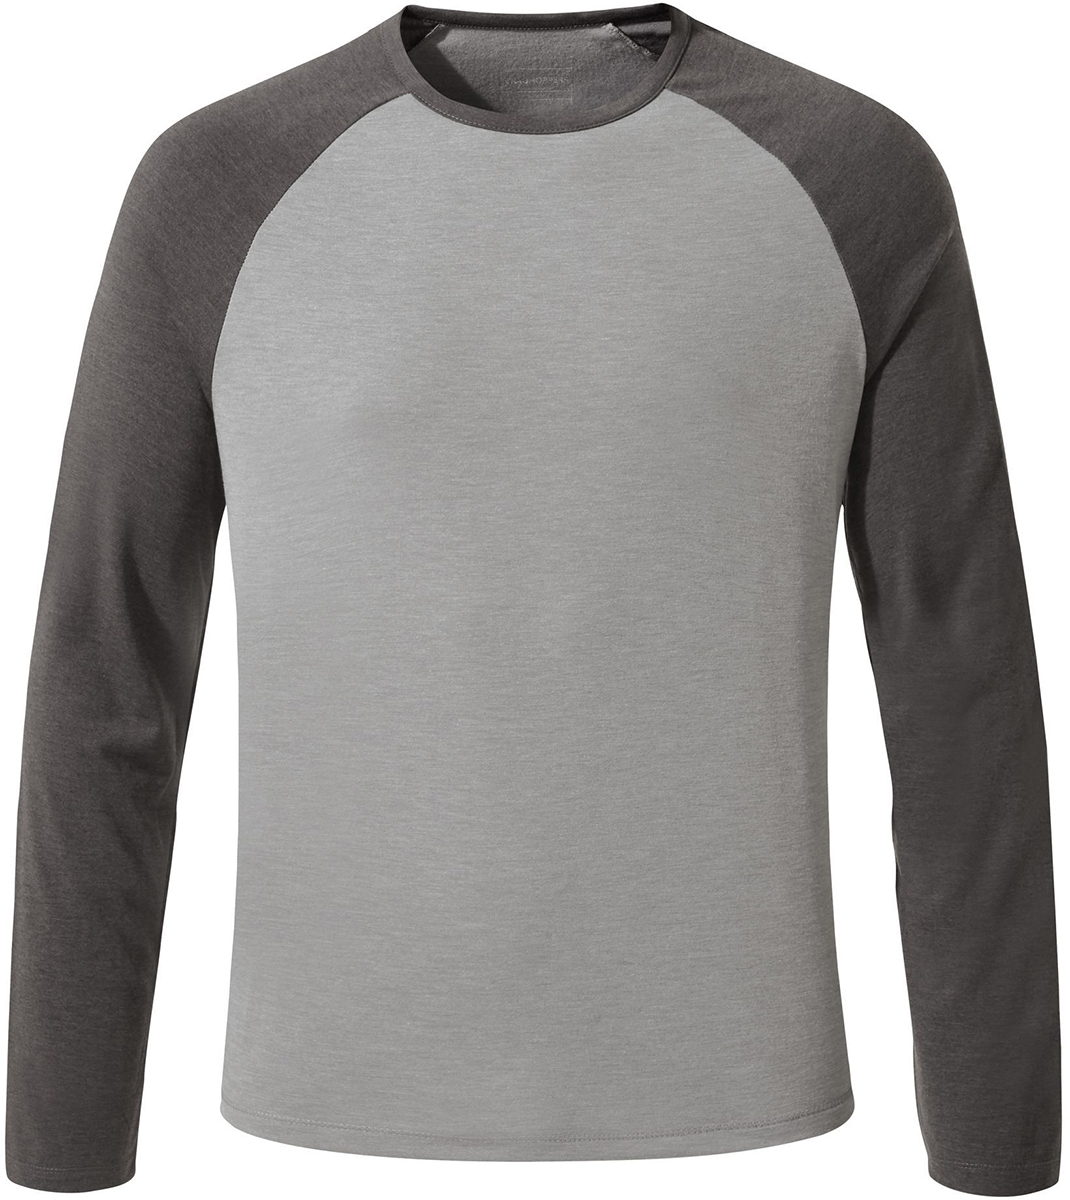 Craghoppers First Layer Long Sleeved T-Shirt | Jerseys